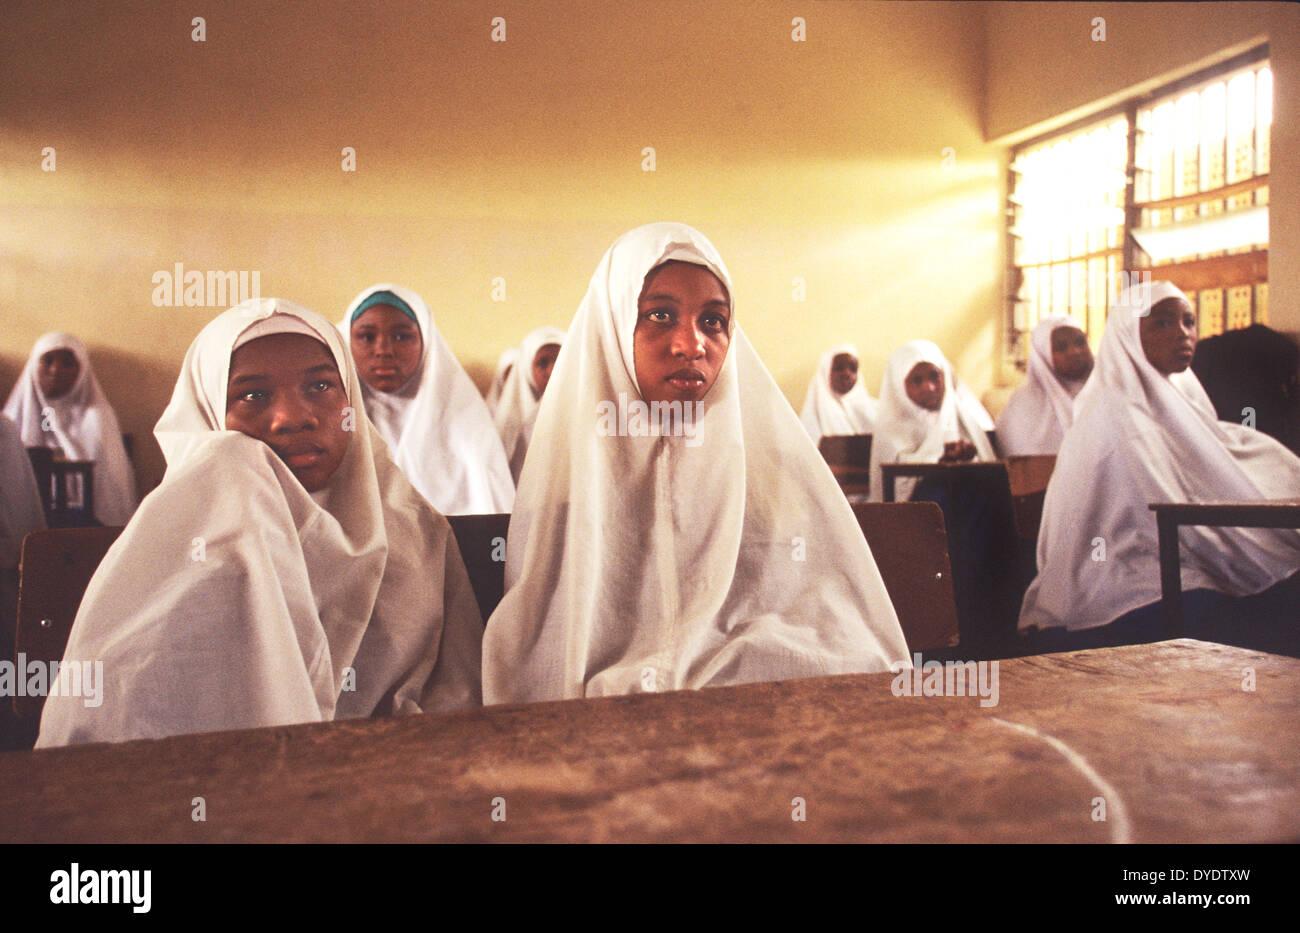 Segregated classes for boys and girls in Islamic education